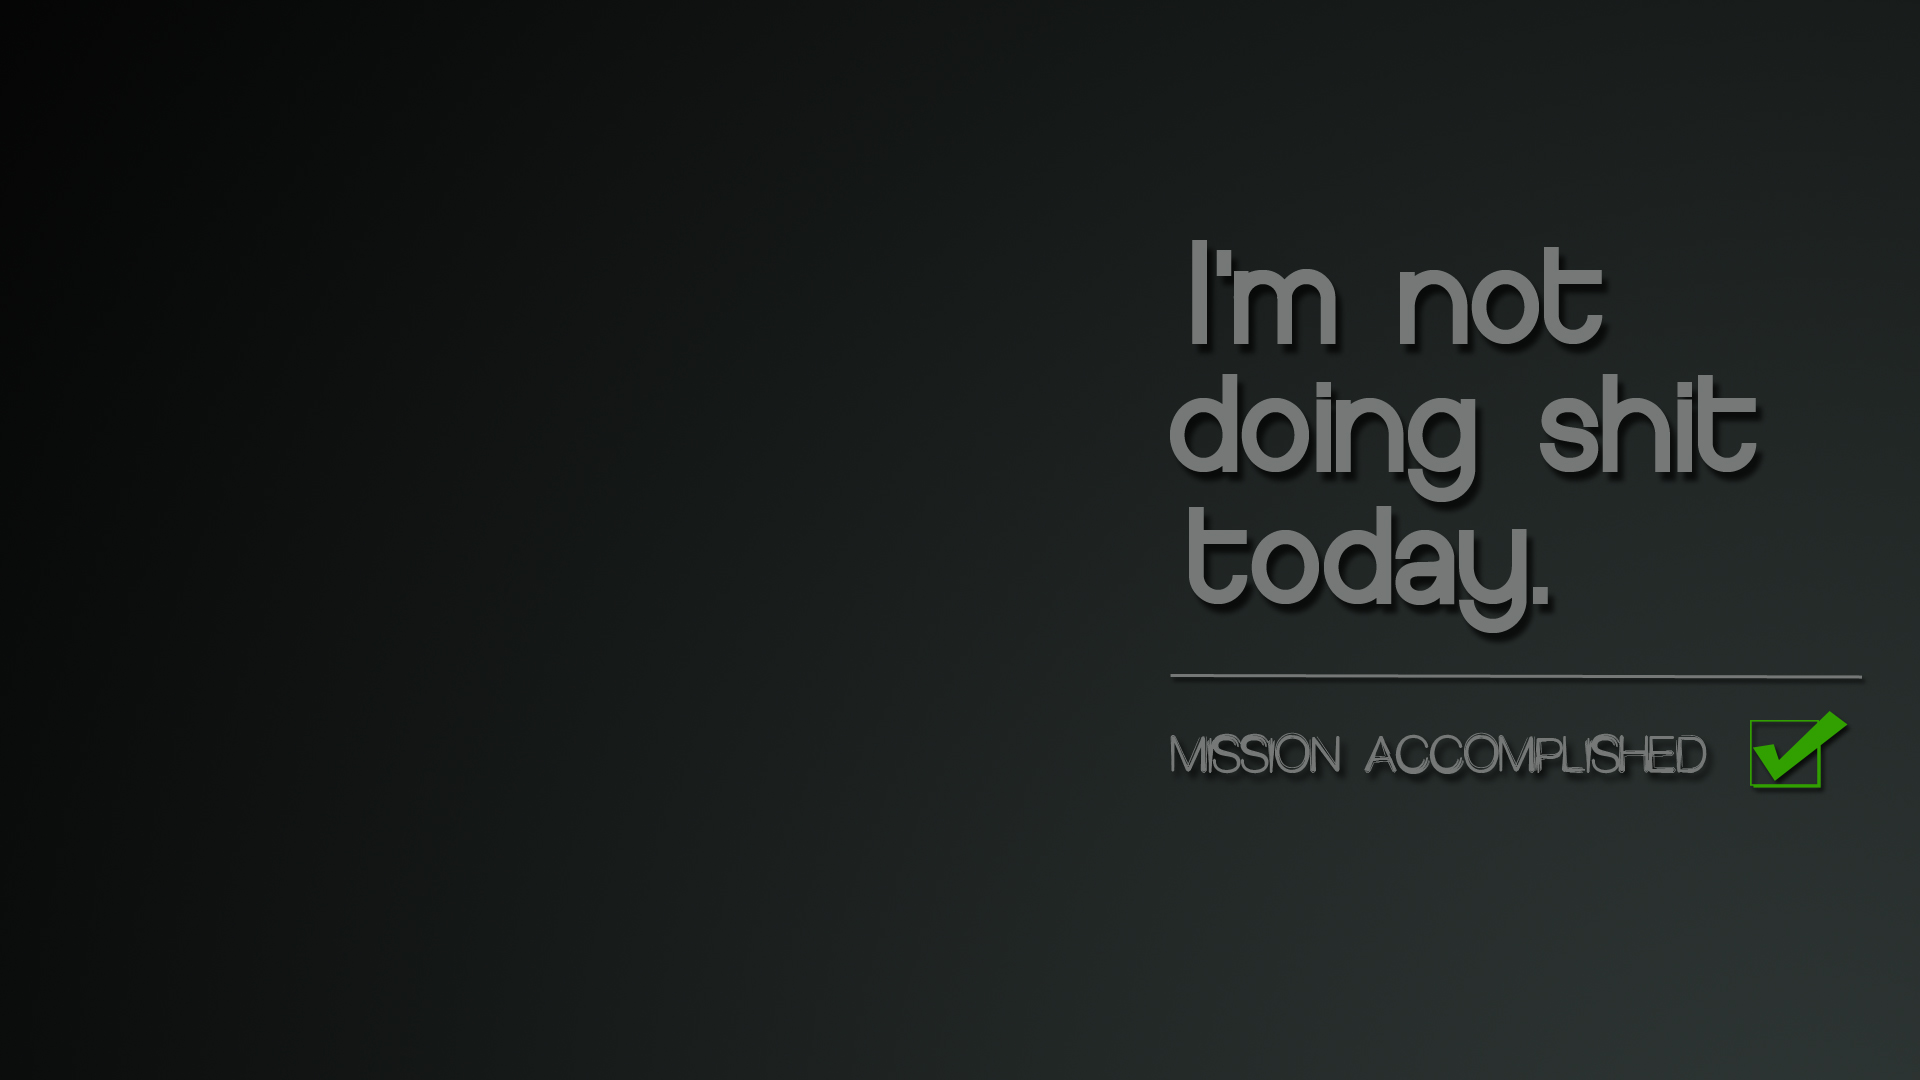 Im Not Doing Shit Today Full HD Wallpaper And Background Image